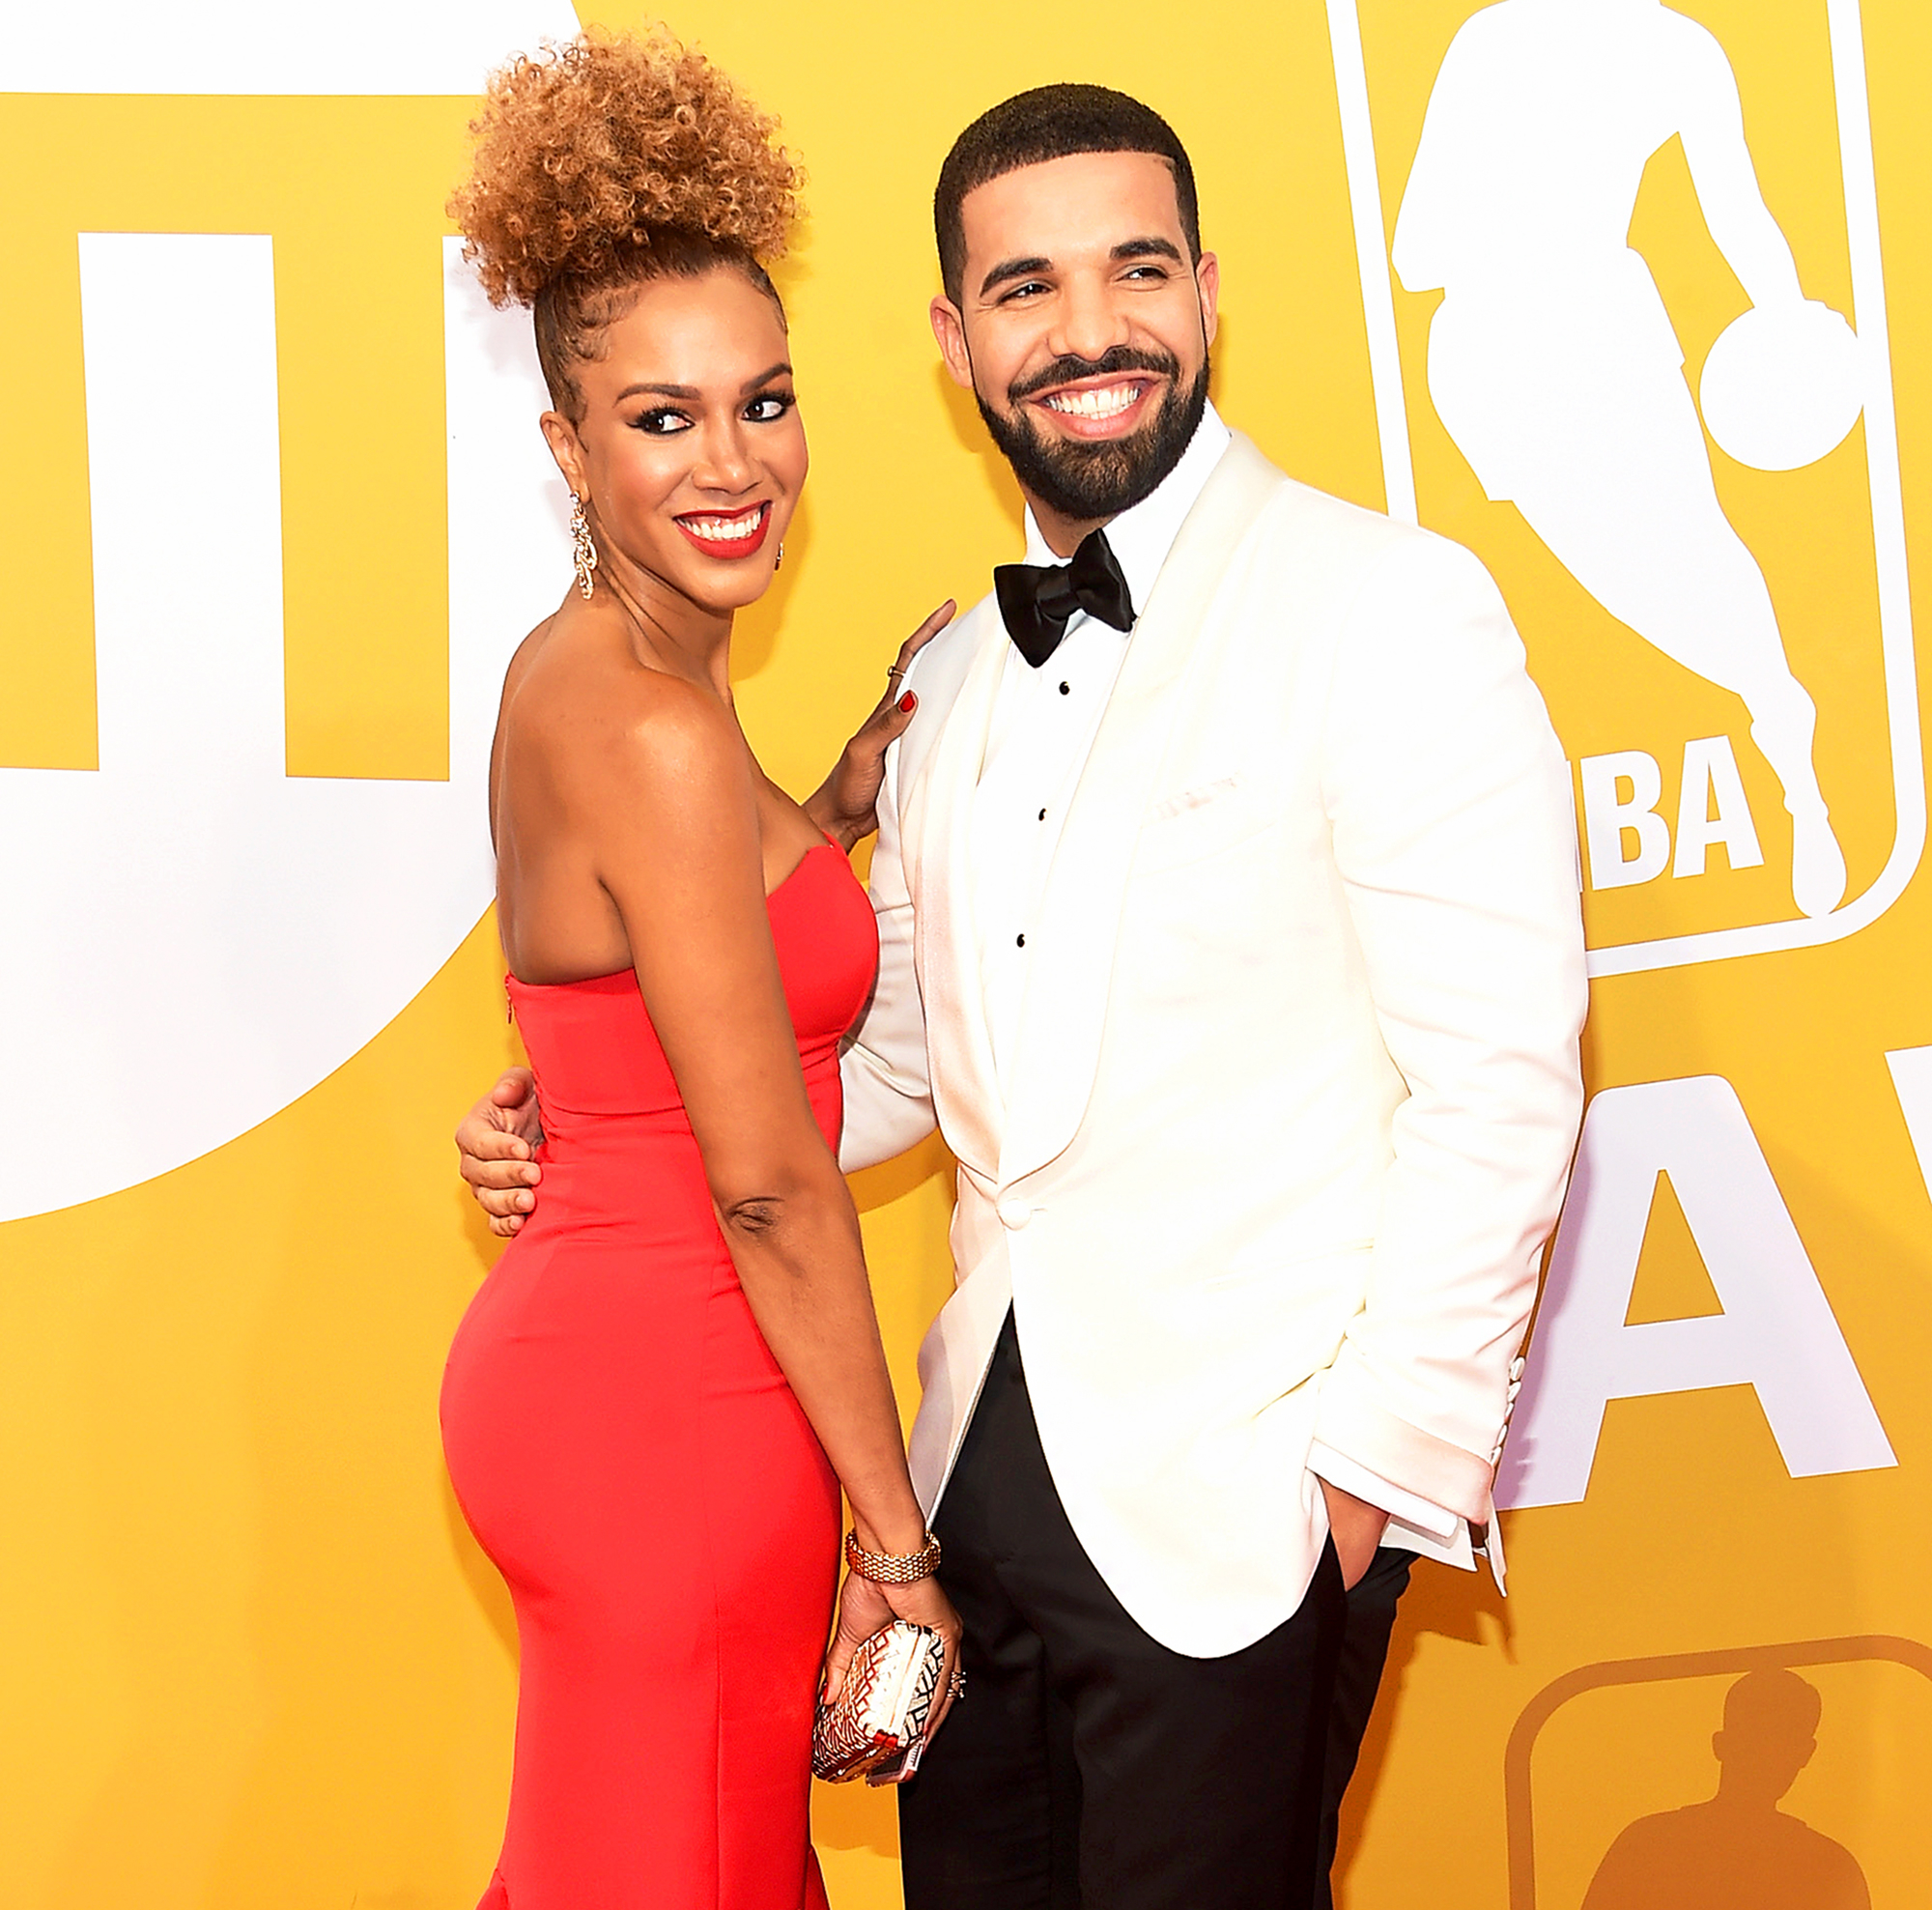 Rosalyn Gold-Onwude and Drake